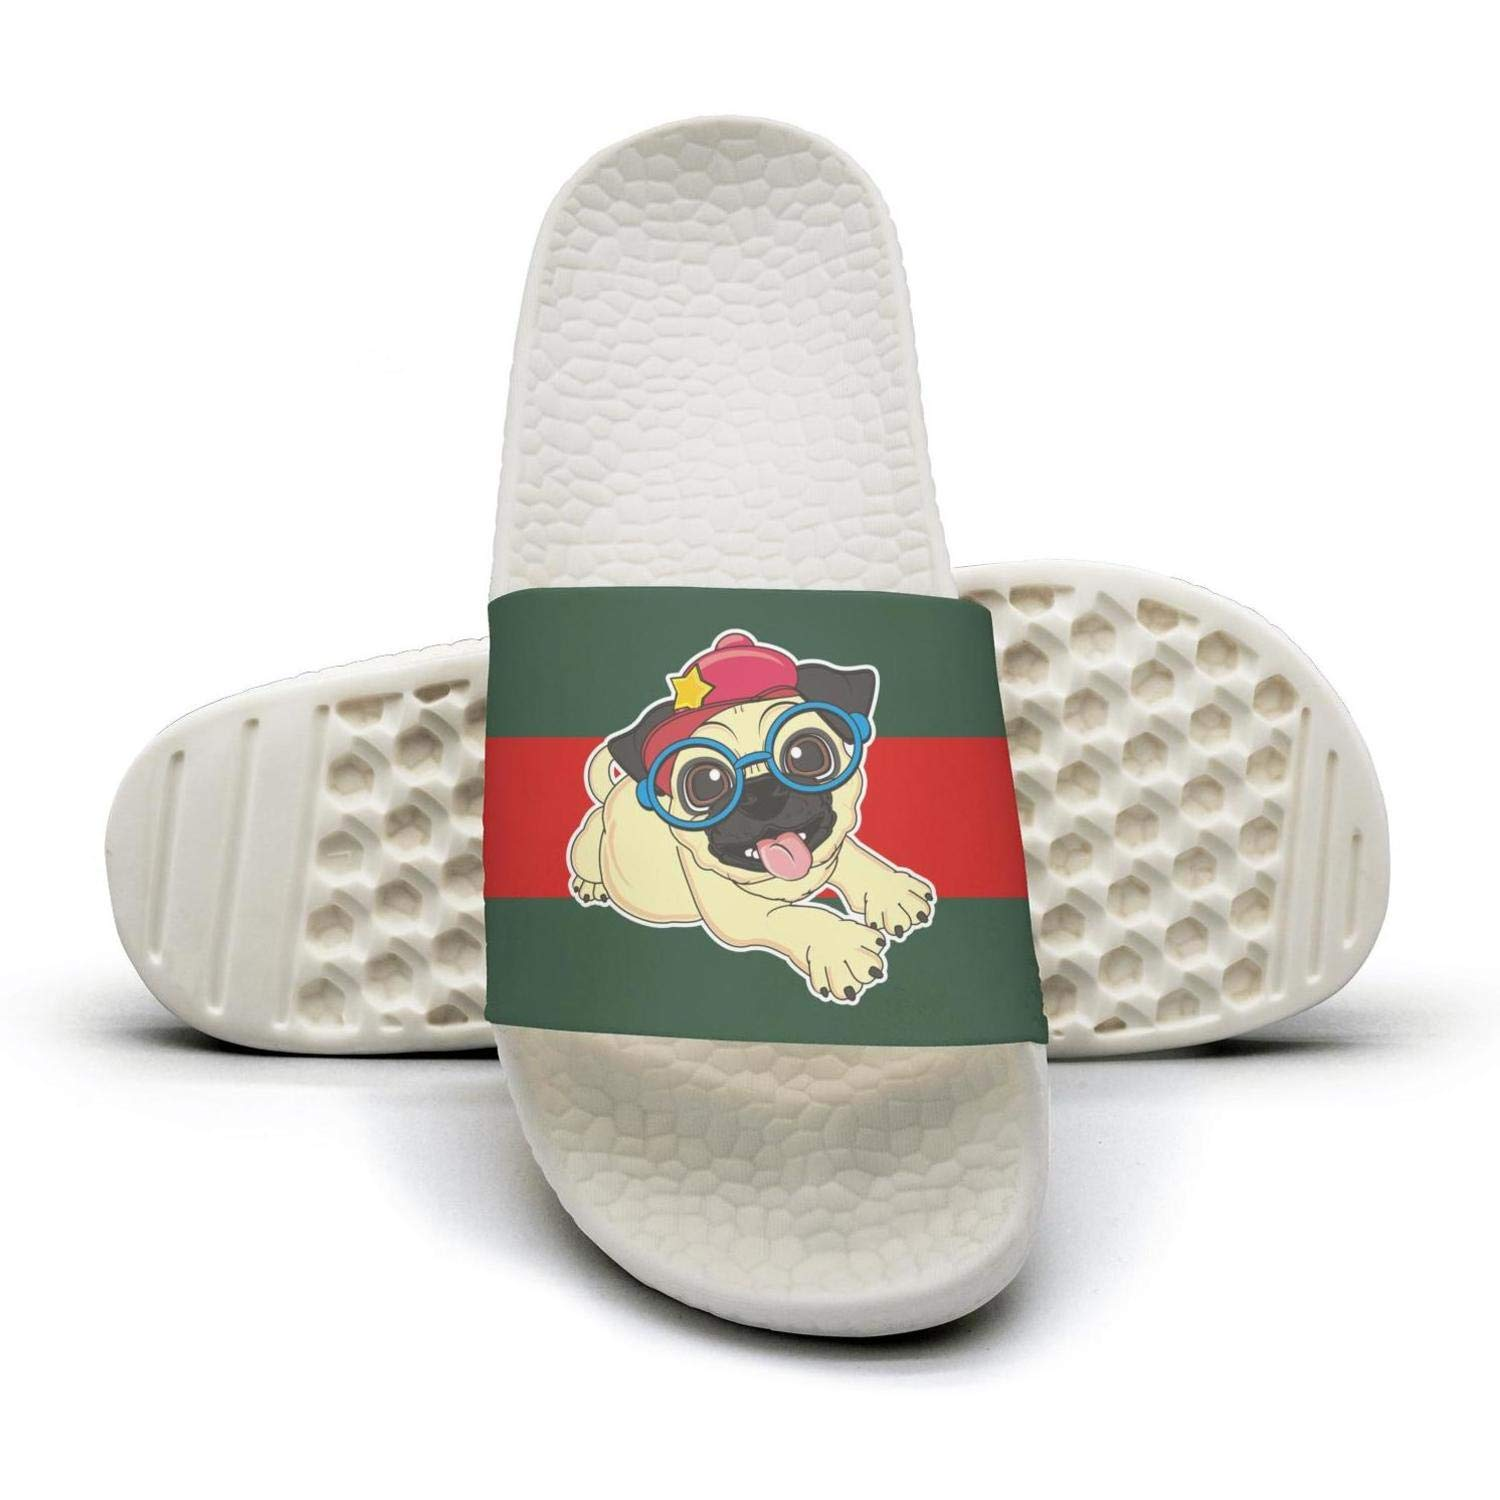 Cute Pug glasses with red hat man red and green stripe flat Slipper Sandals Mules Slippers